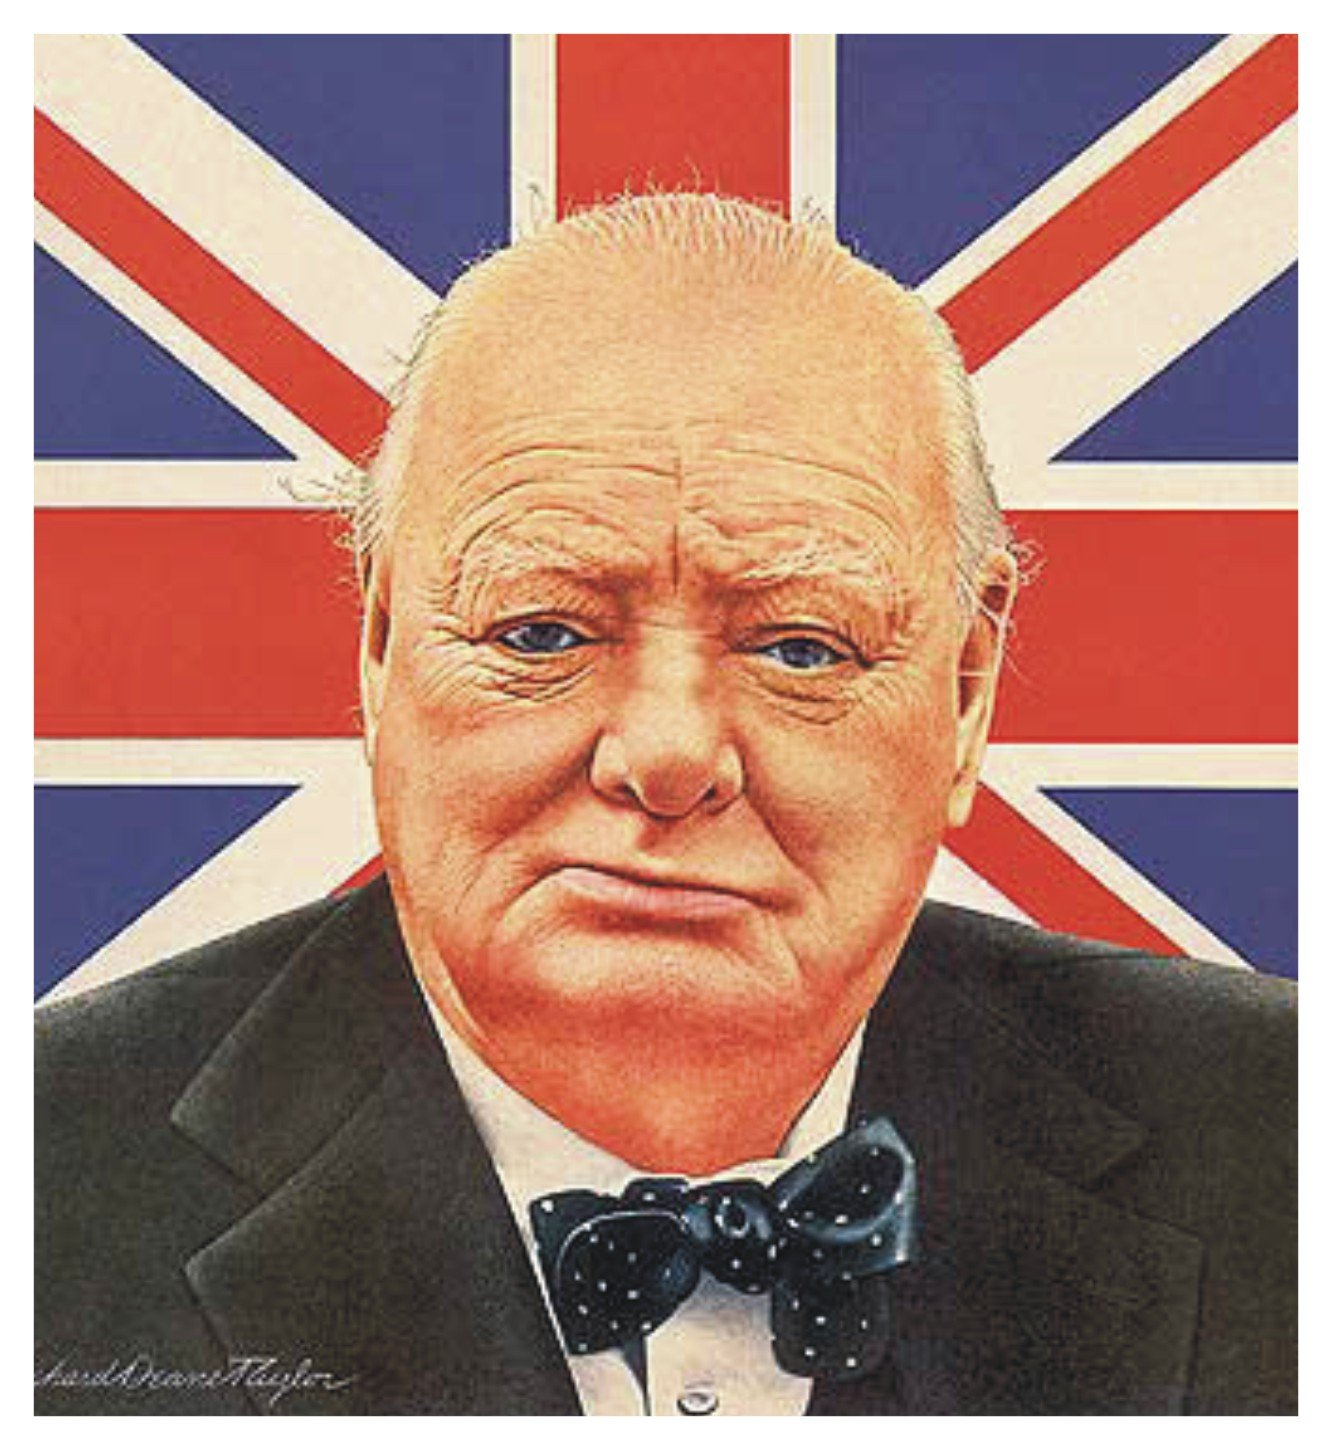 Winston Churchill, Britain, british, Winston Churchill Racist, Winston Churchill facts, Winston Churchill biography, Winston Churchill quotes, politician, Prime Minister of the United Kingdom, Winston Churchill life, worst british, cruel British leaders, bad british, Hitler, WWII